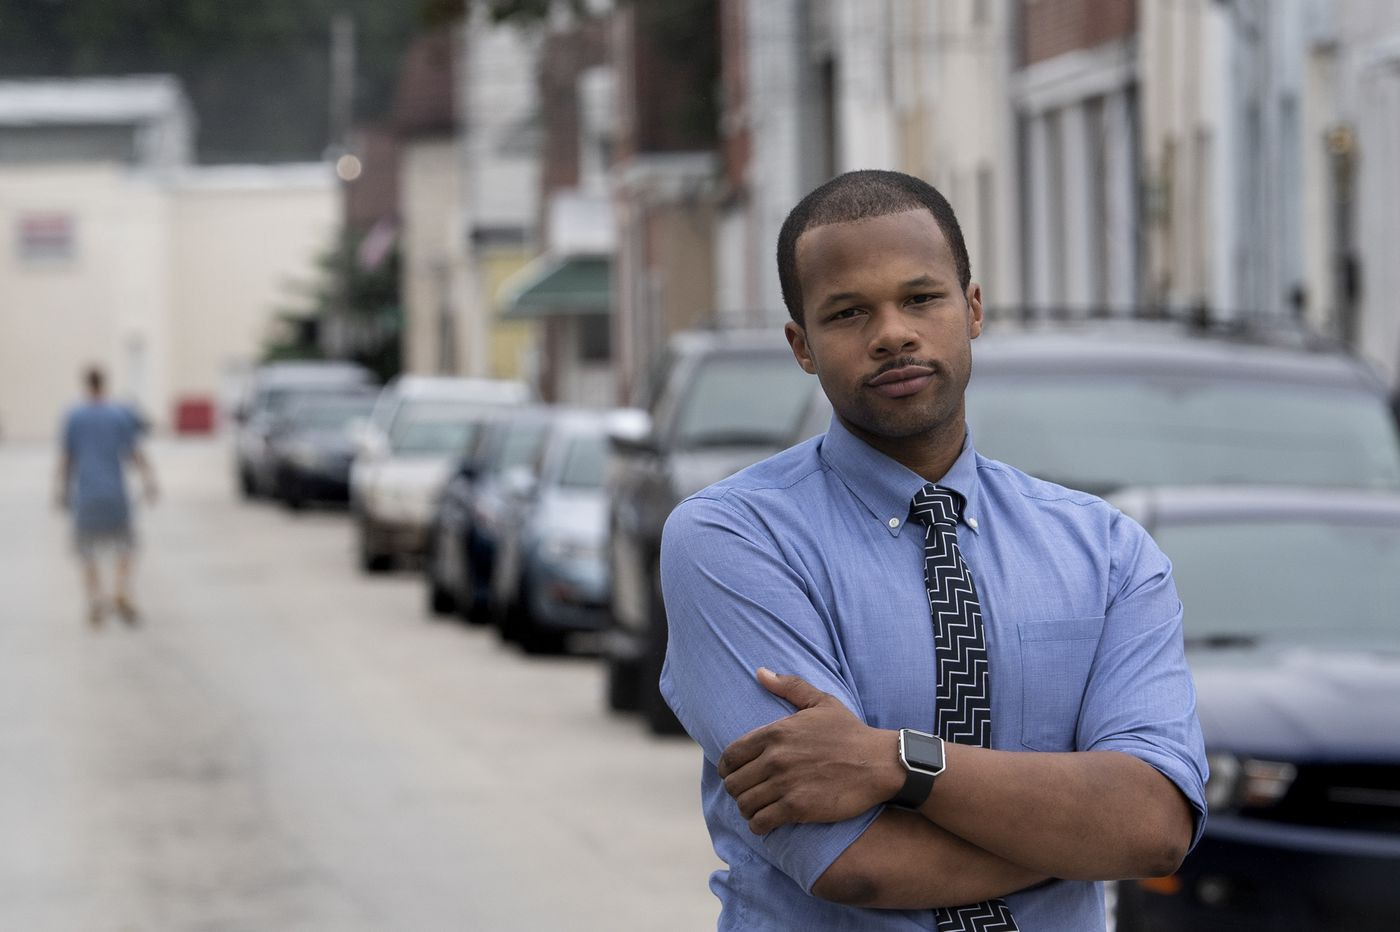 Bridgeport elected its first black mayor. Then the town divided.